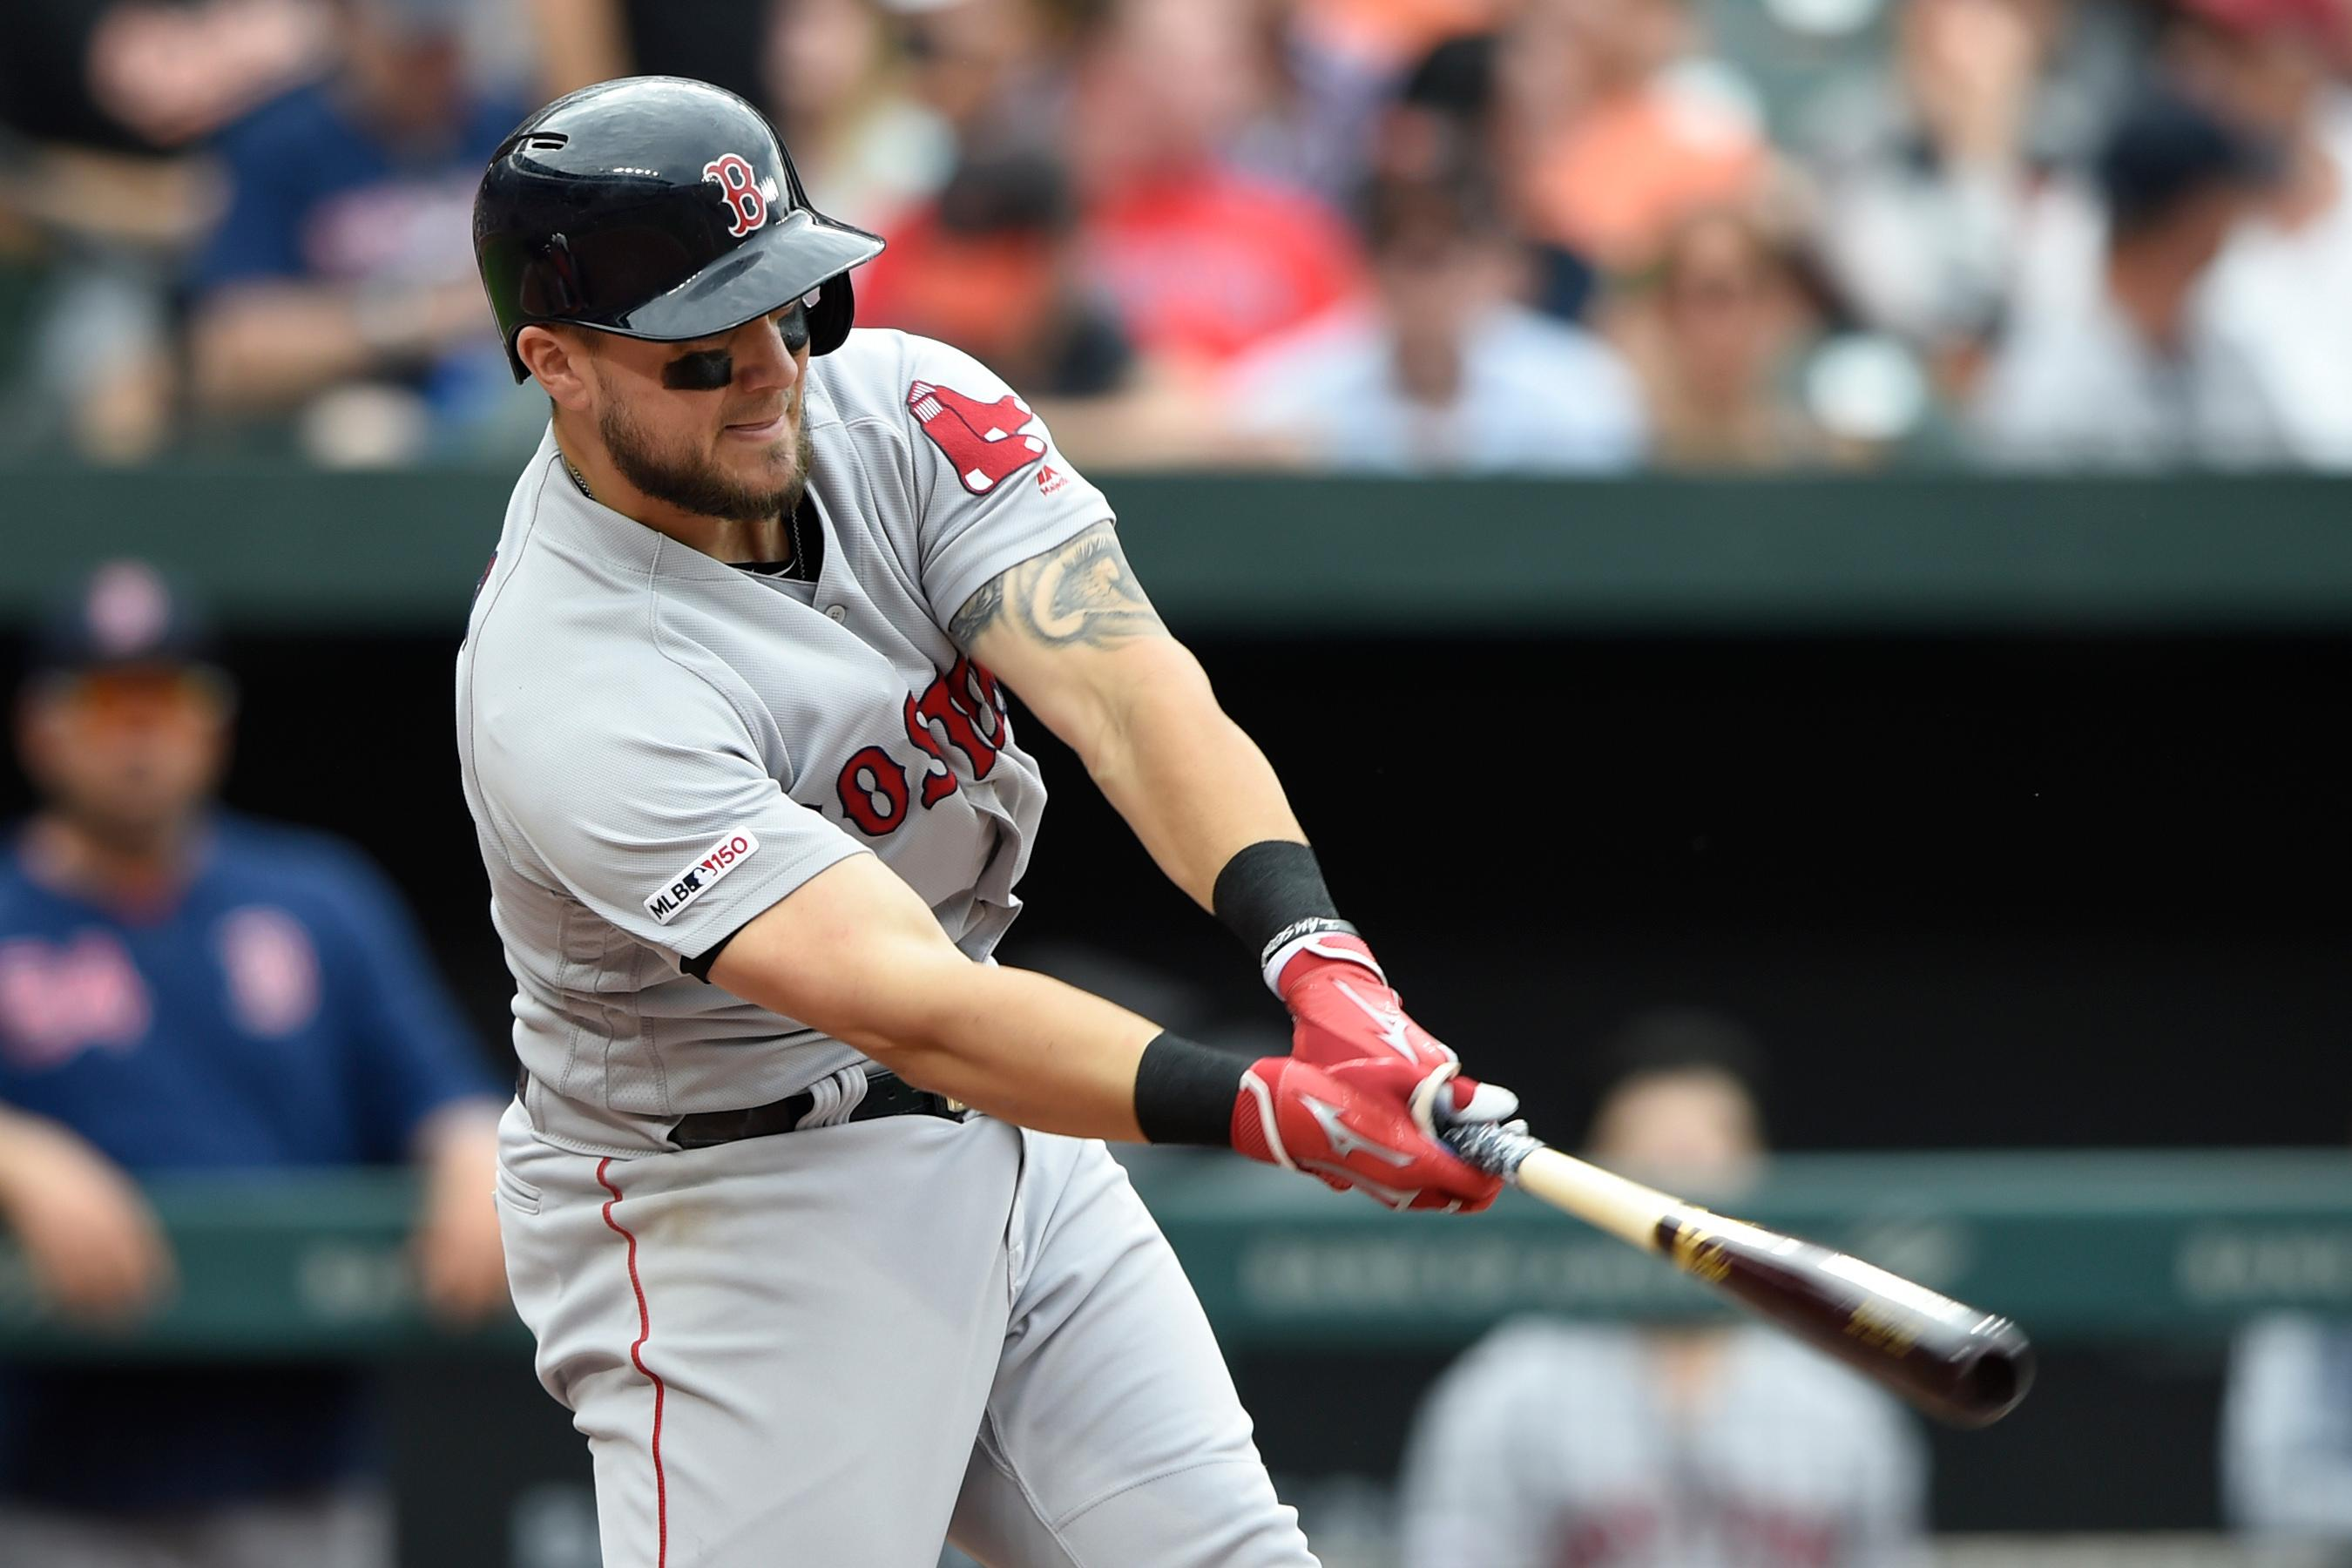 Boston Red Sox's Michael Chavis hits a single against the Baltimore Orioles in the sixth inning of a baseball game Saturday, June 15, 2019, in Baltimore. (AP Photo/Gail Burton)